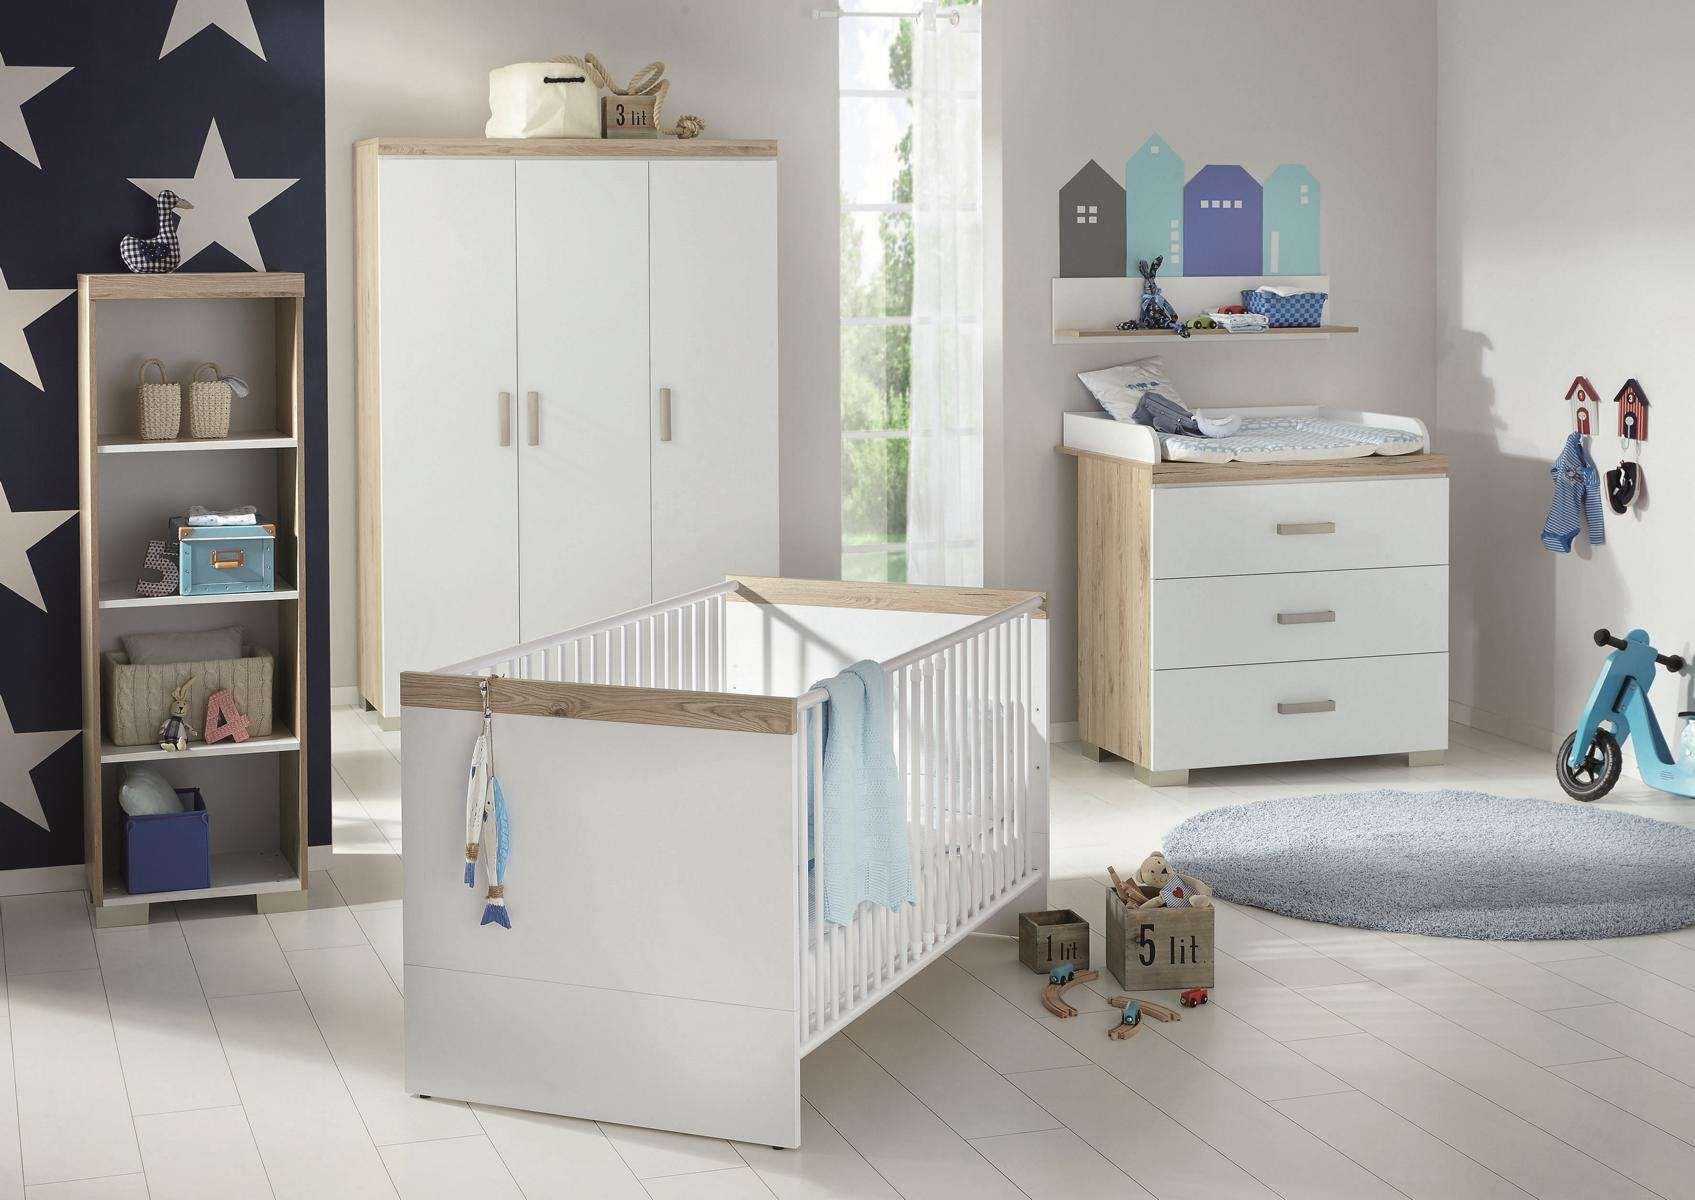 44 Brilliant Baby Plus Kinderzimmer Clara